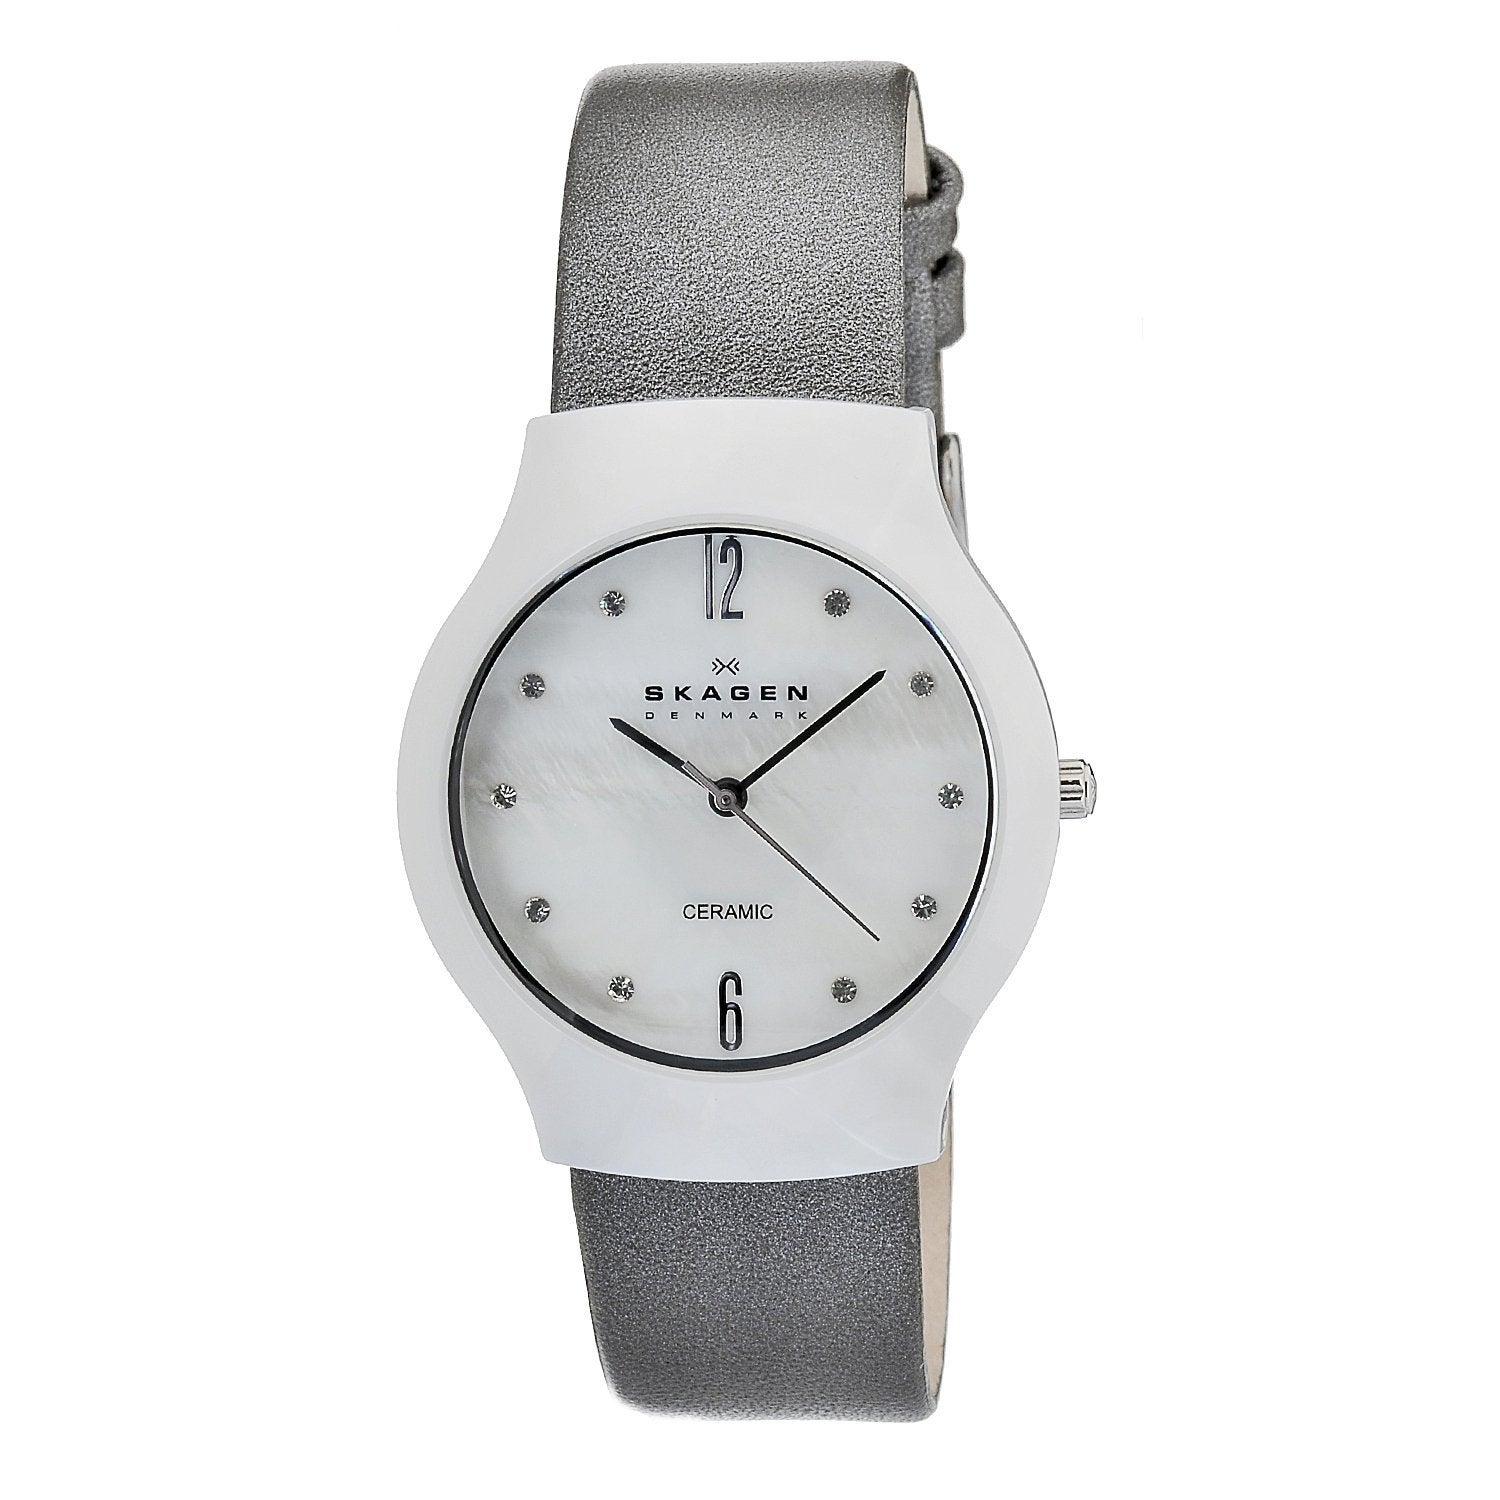 ef0631856 Shop Skagen Women's Ceramic White Dial Silver Leather Strap Watch - Free  Shipping Today - Overstock - 6857095